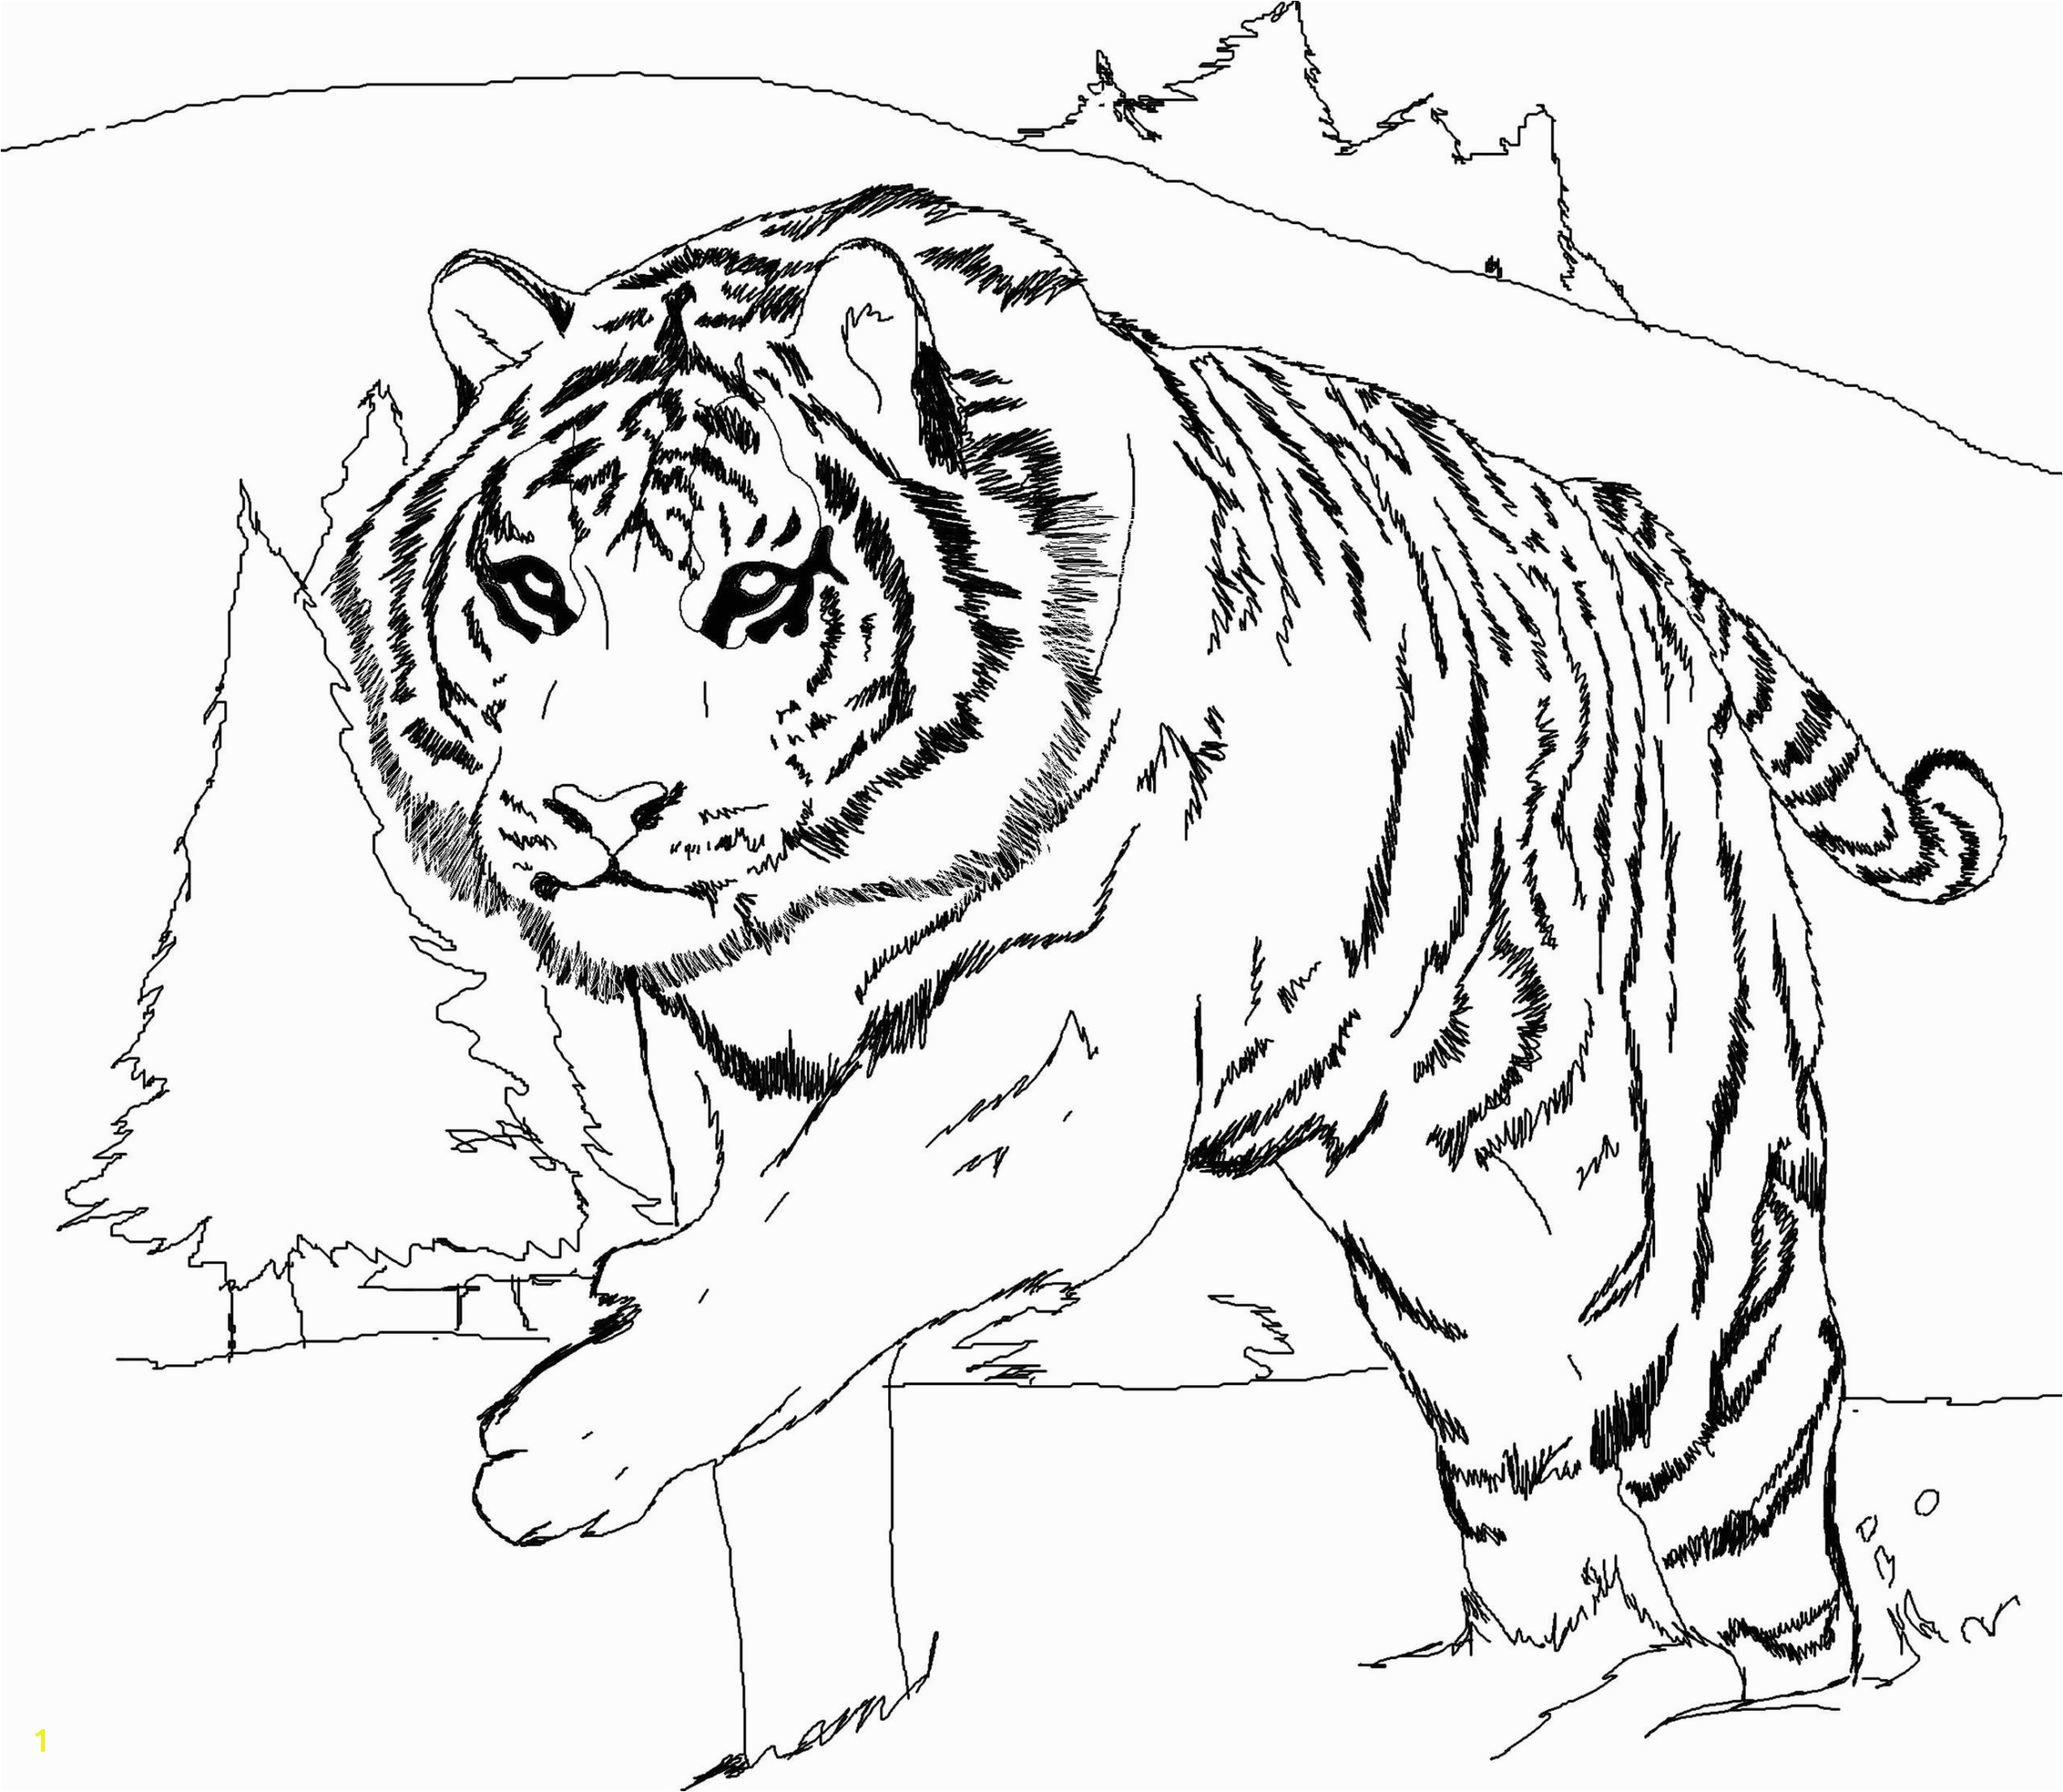 tiger coloring in pages fresh 59 most awesome tiger coloring pages for kids printable of tiger coloring in pages